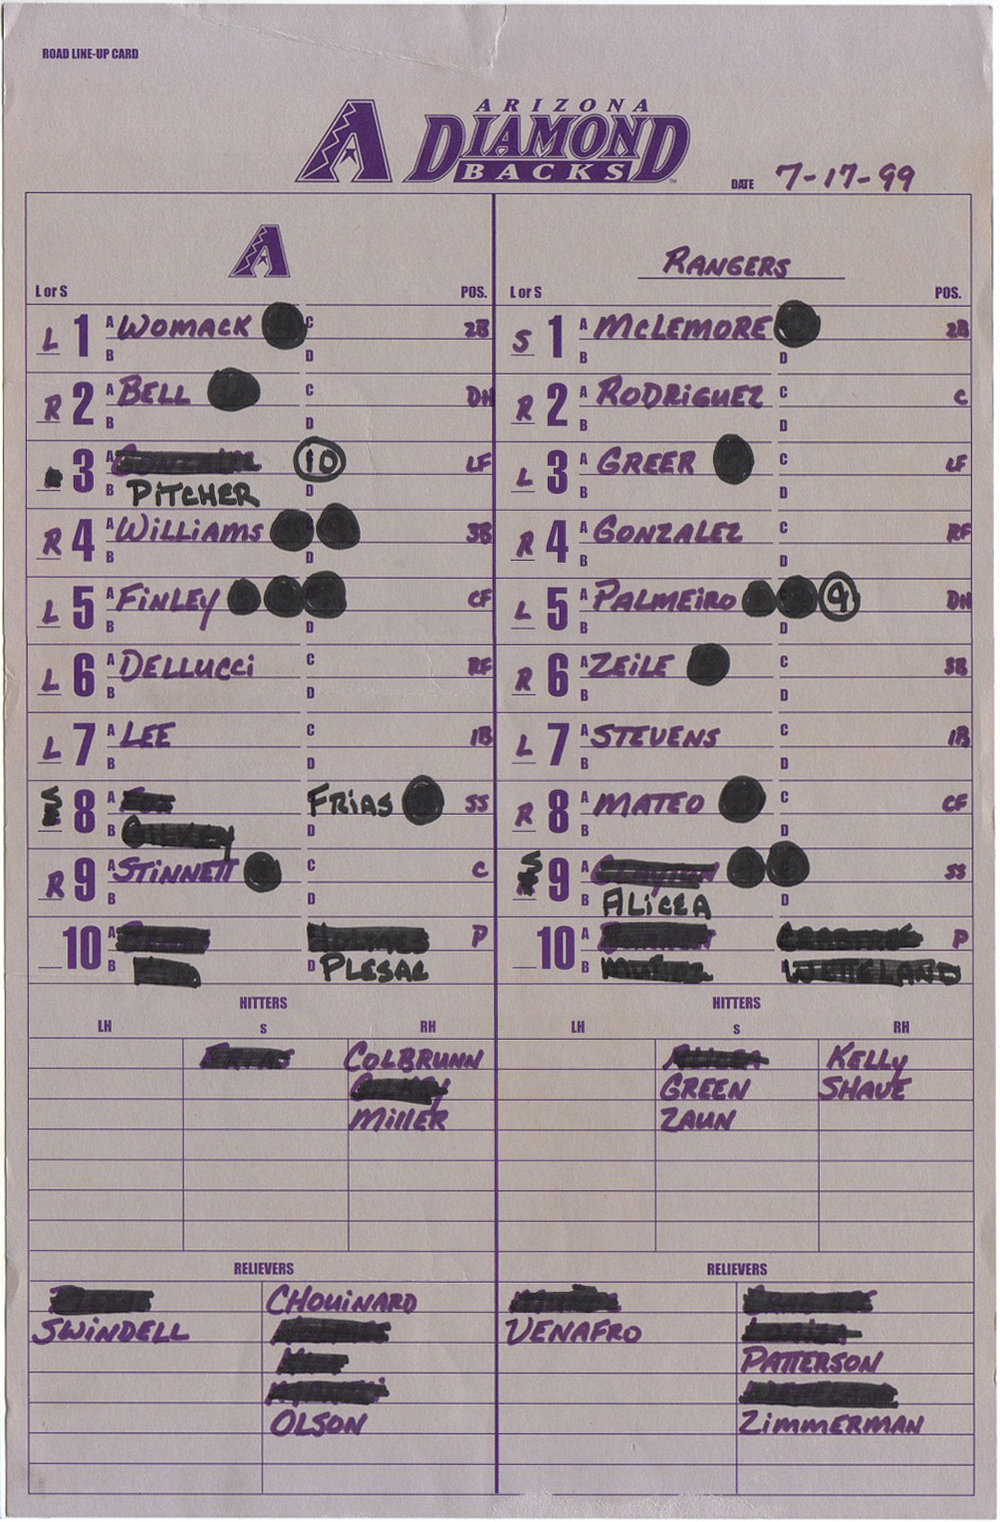 LINEUP CARDS -